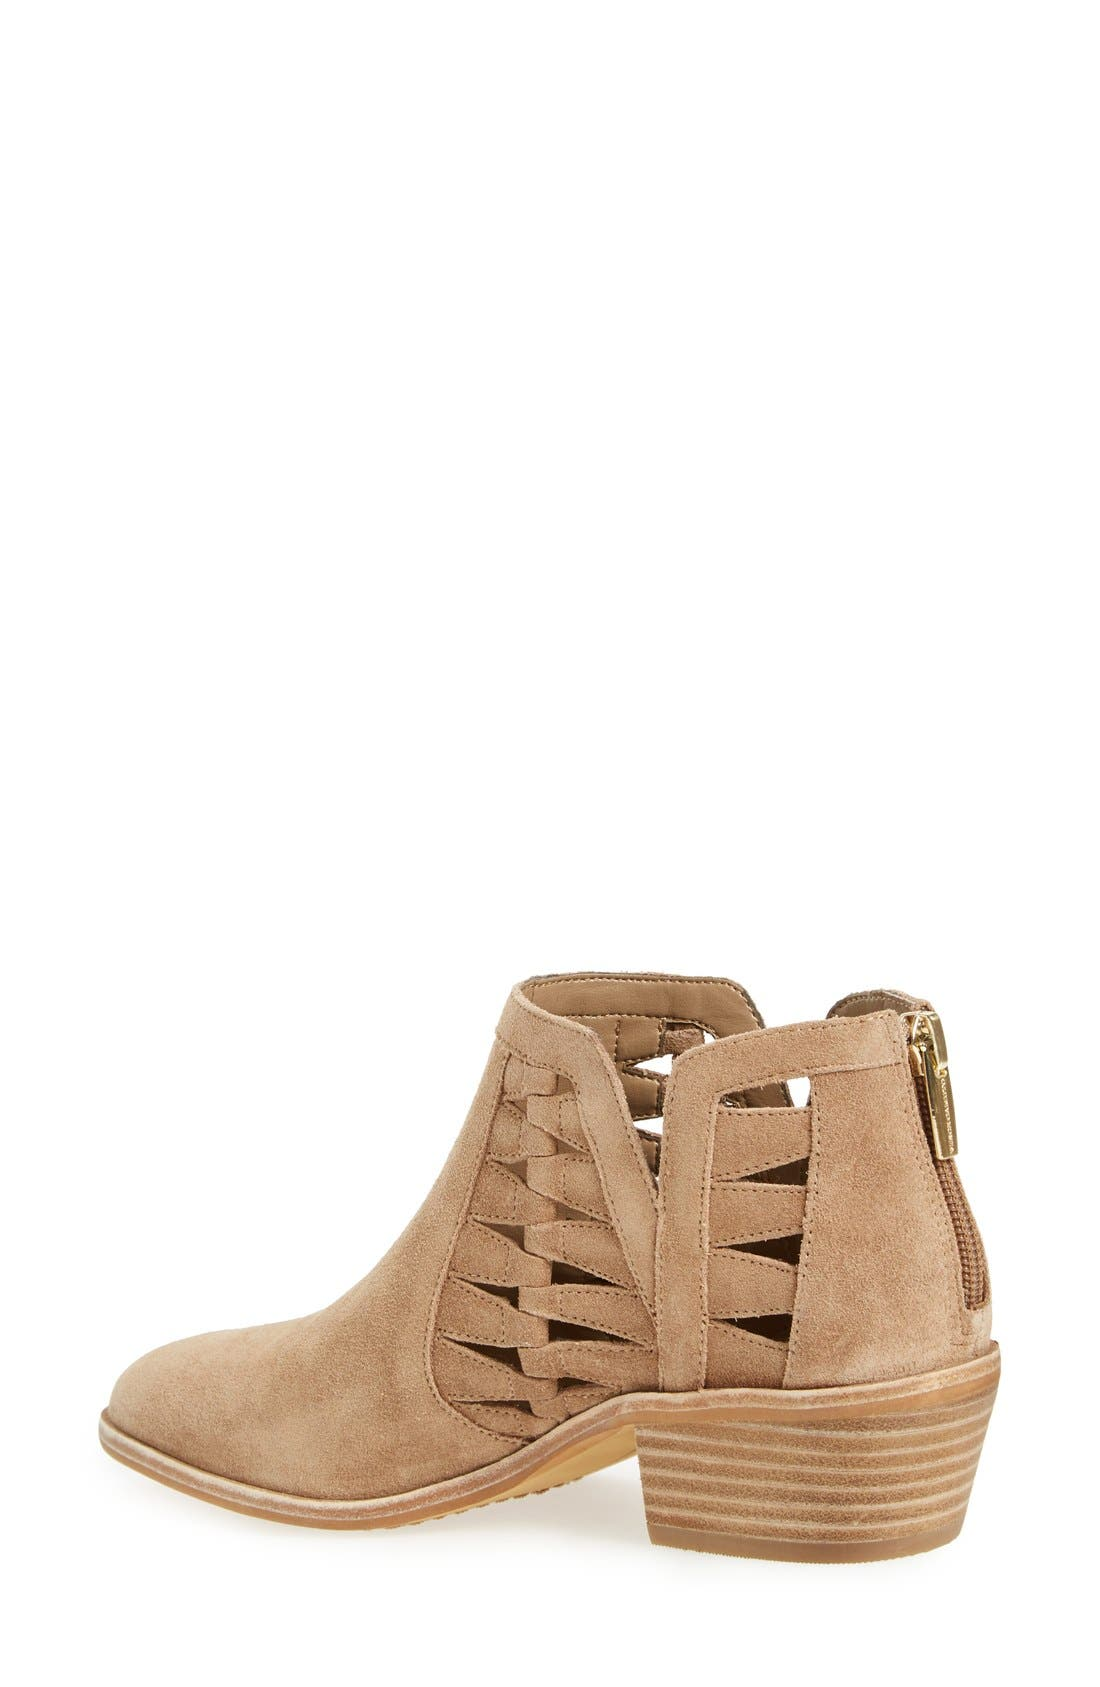 'Peera' Cutout Bootie,                             Alternate thumbnail 2, color,                             Khaki Suede